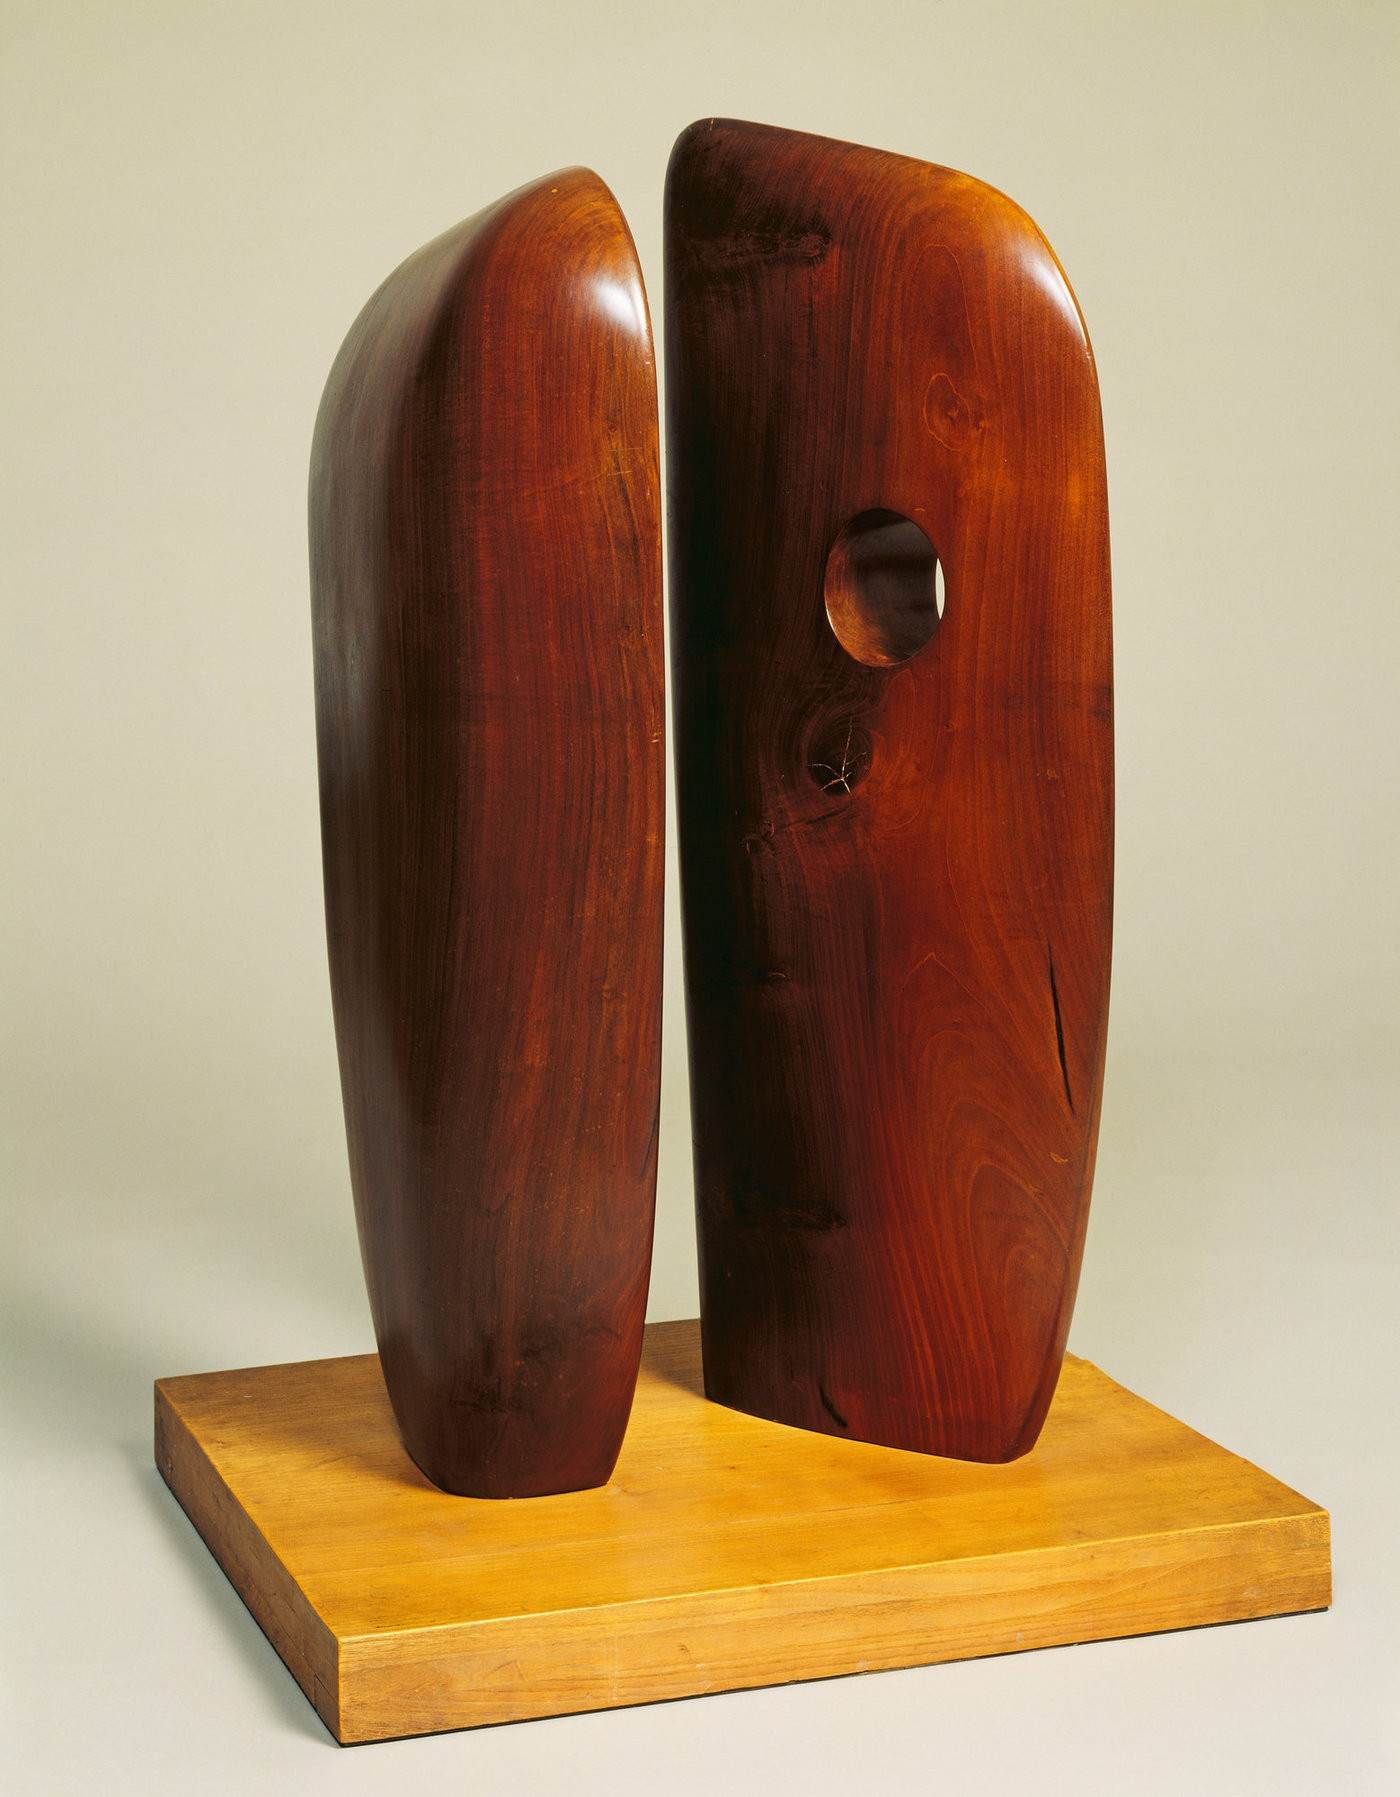 Medium dame 20barbara 20hepworth  20forms 20in 20echelon  201938  20presented 20by 20the 20artist 201964  20  20bowness tate  20london  202014 20 20